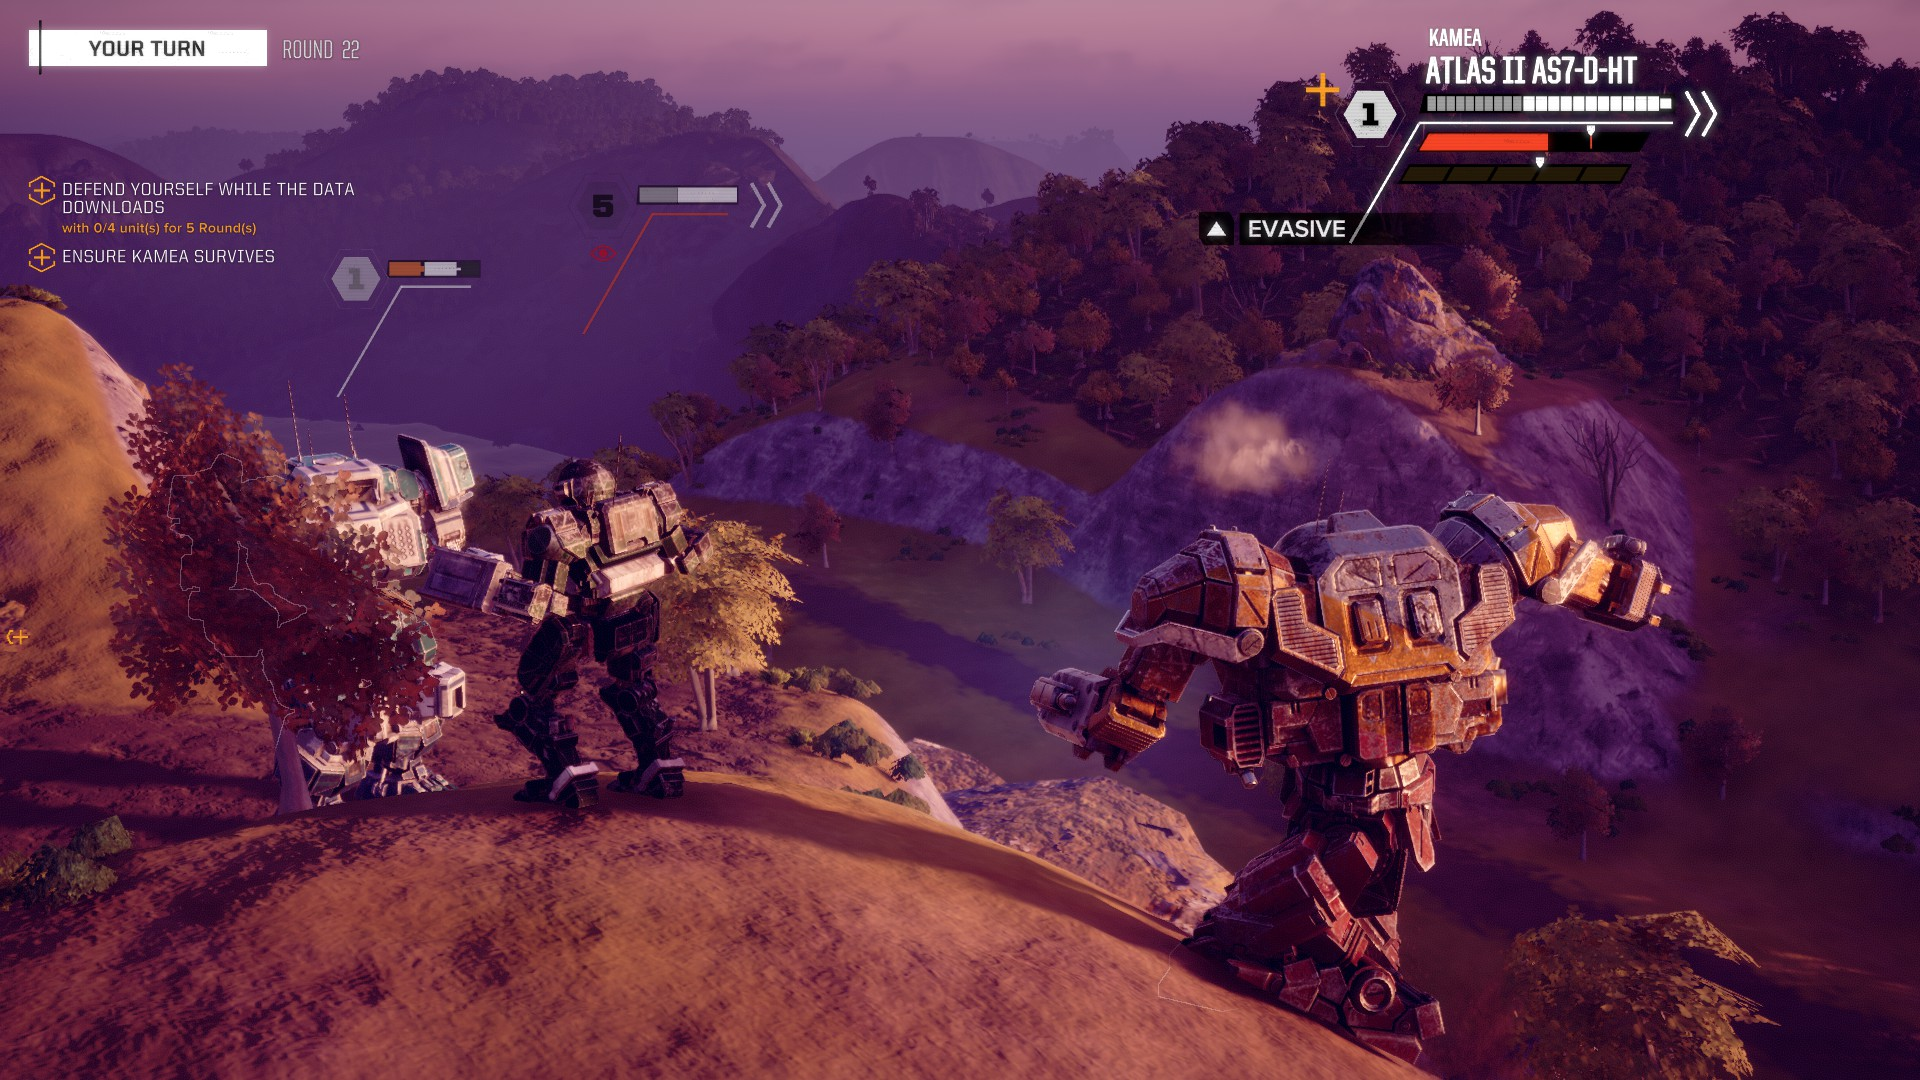 Battletech game?